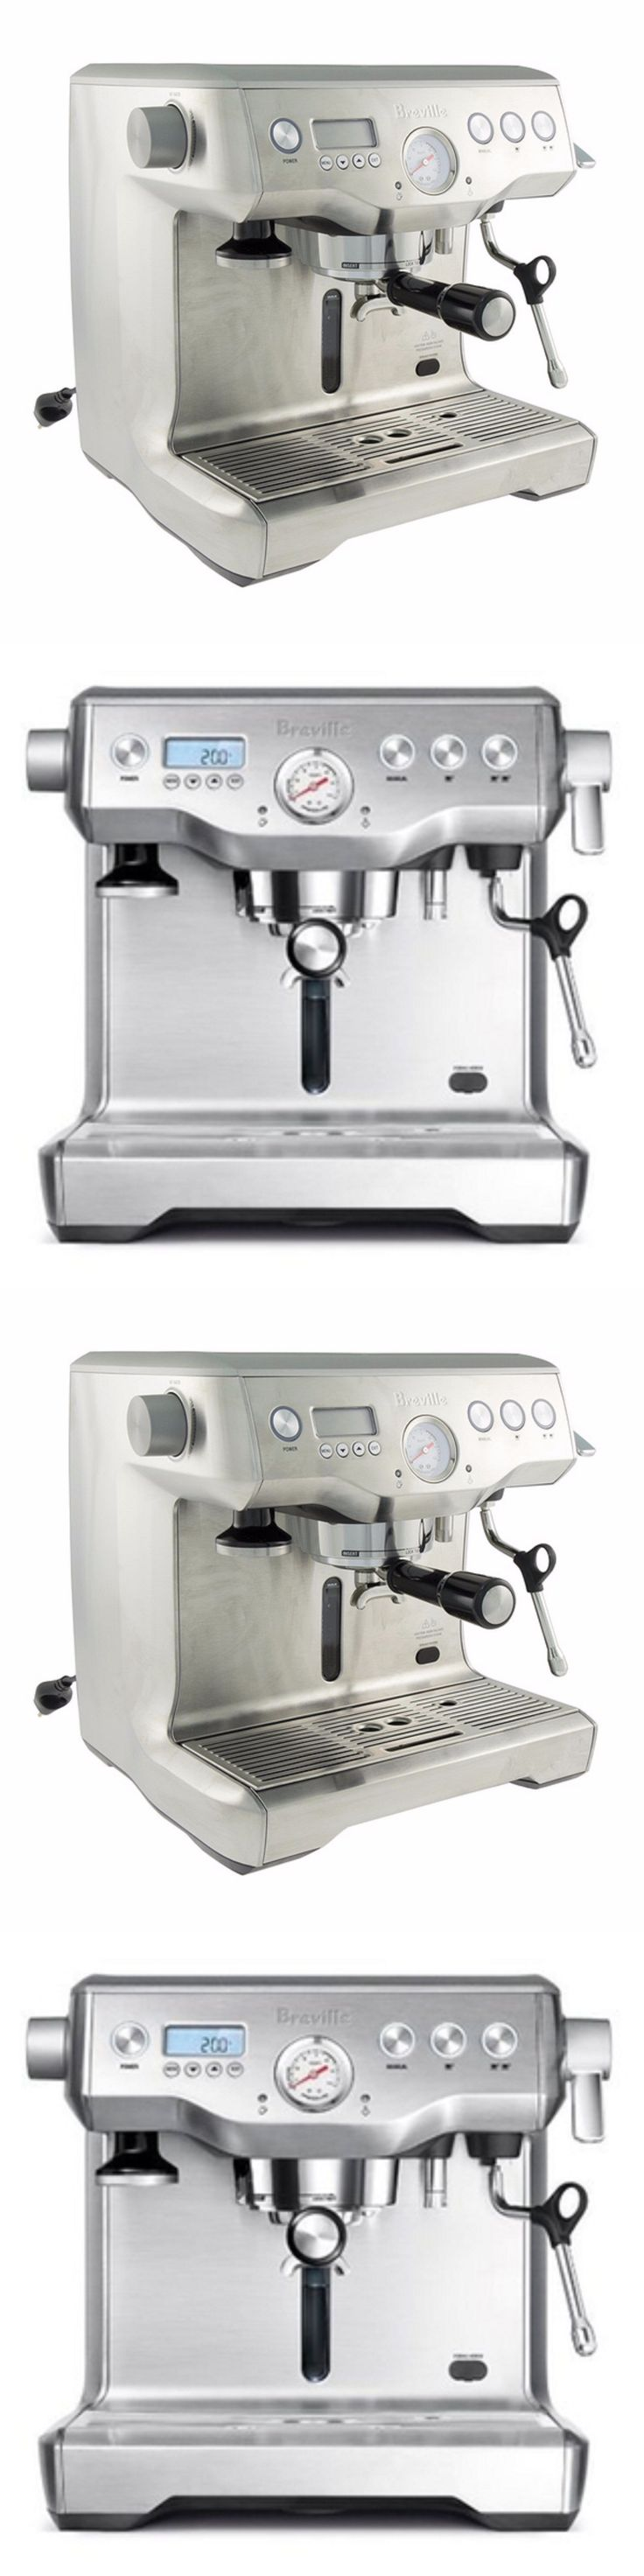 appliances: Stainless Espresso Machine Coffee Maker Italian Dual Boiler Steam Commercial BUY IT NOW ONLY: $1687.59